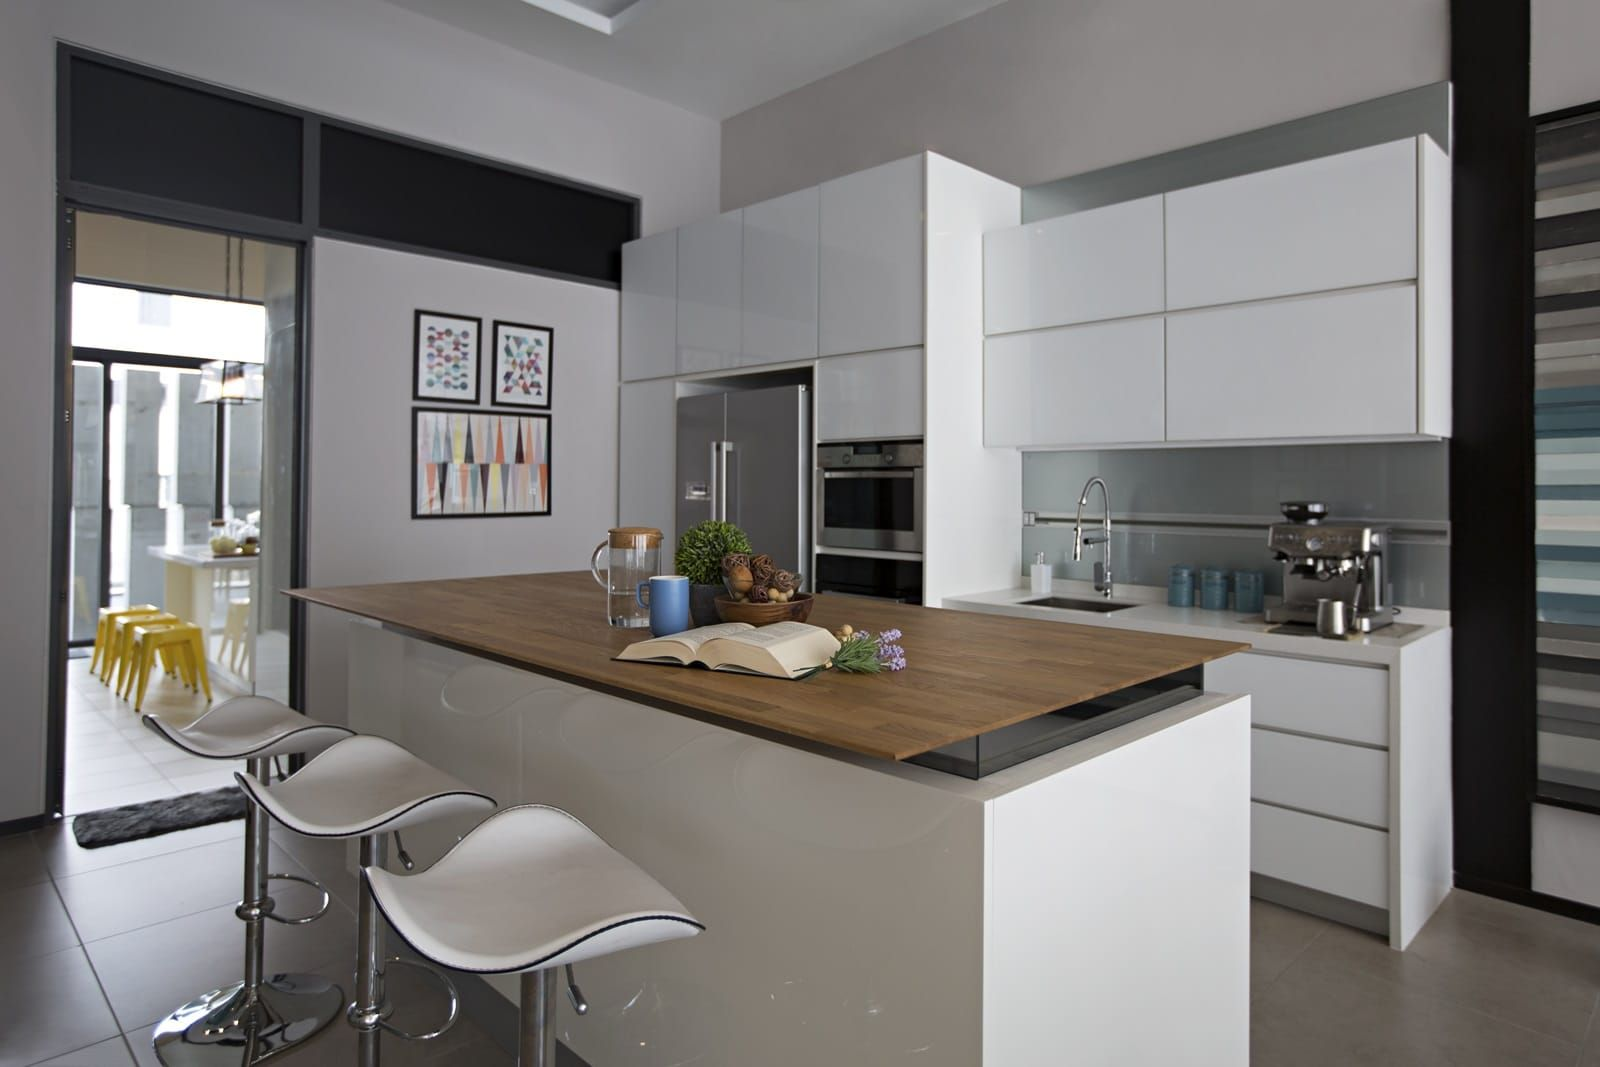 Interiors Of Kitchen Modern Terrace House Dry Kitchen And Island By Turn Design